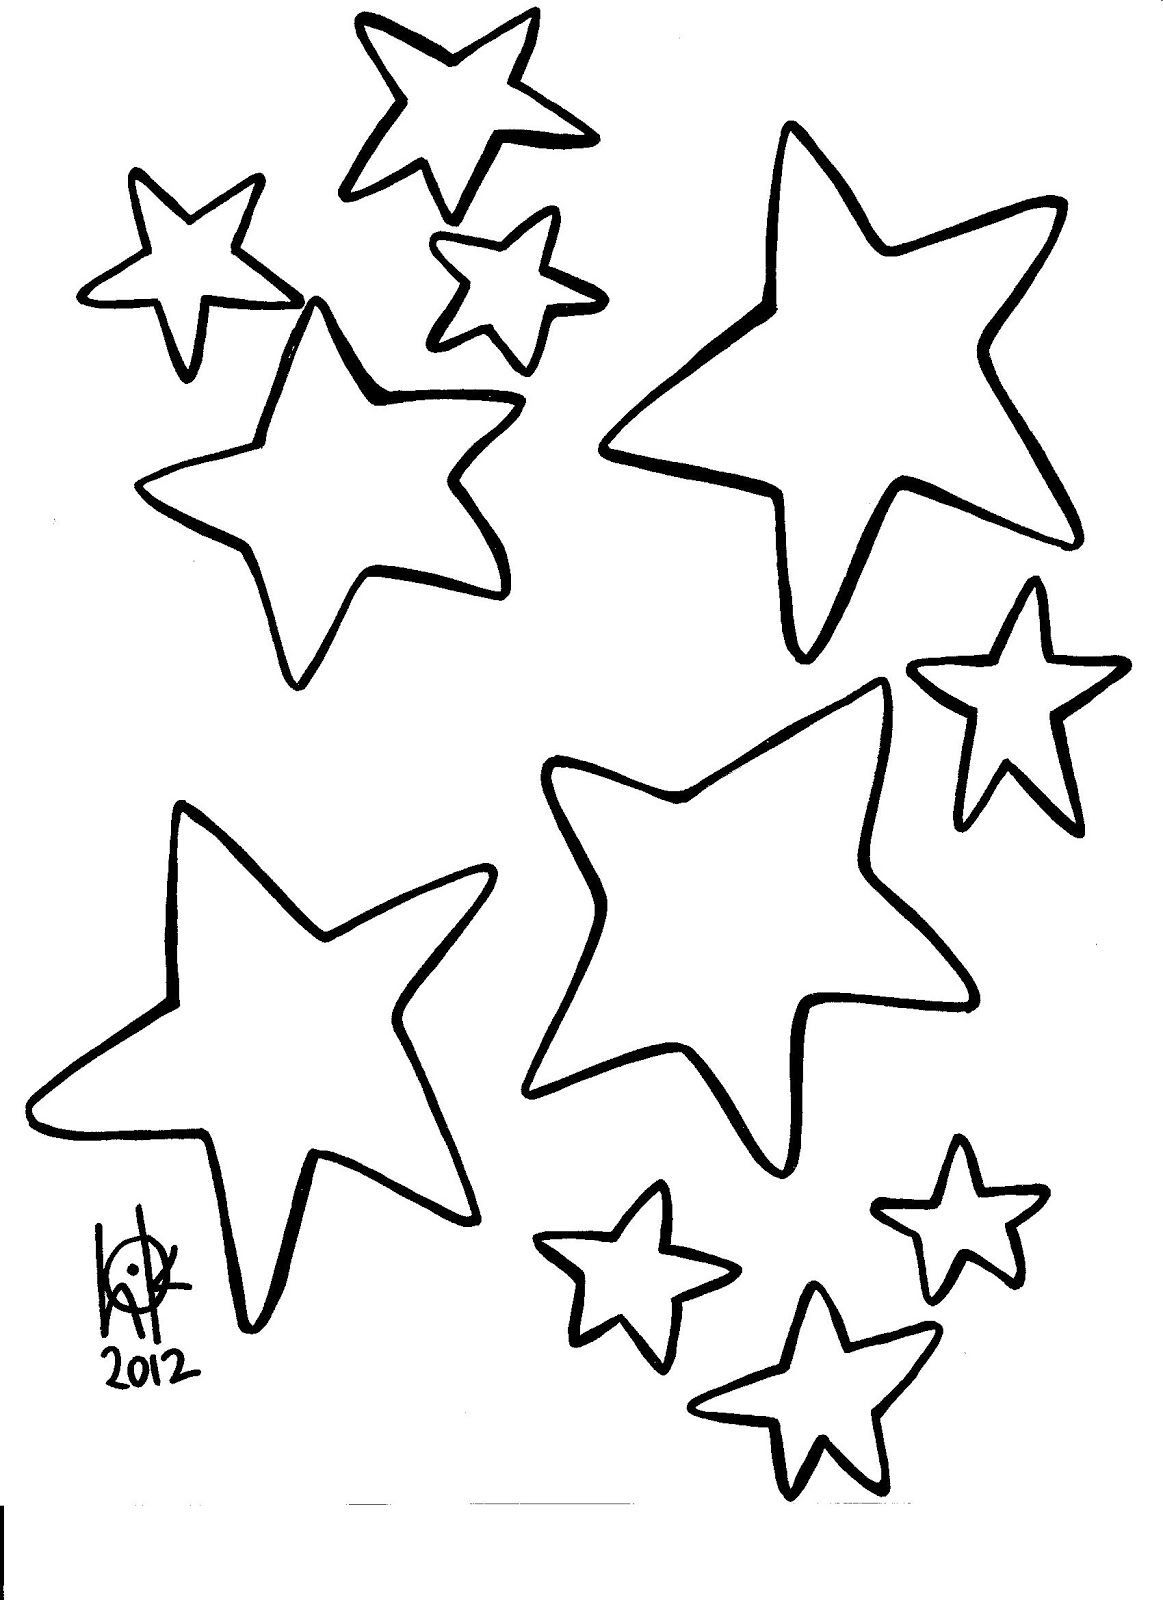 Star Outline Printable Az Coloring Pages With Images Star